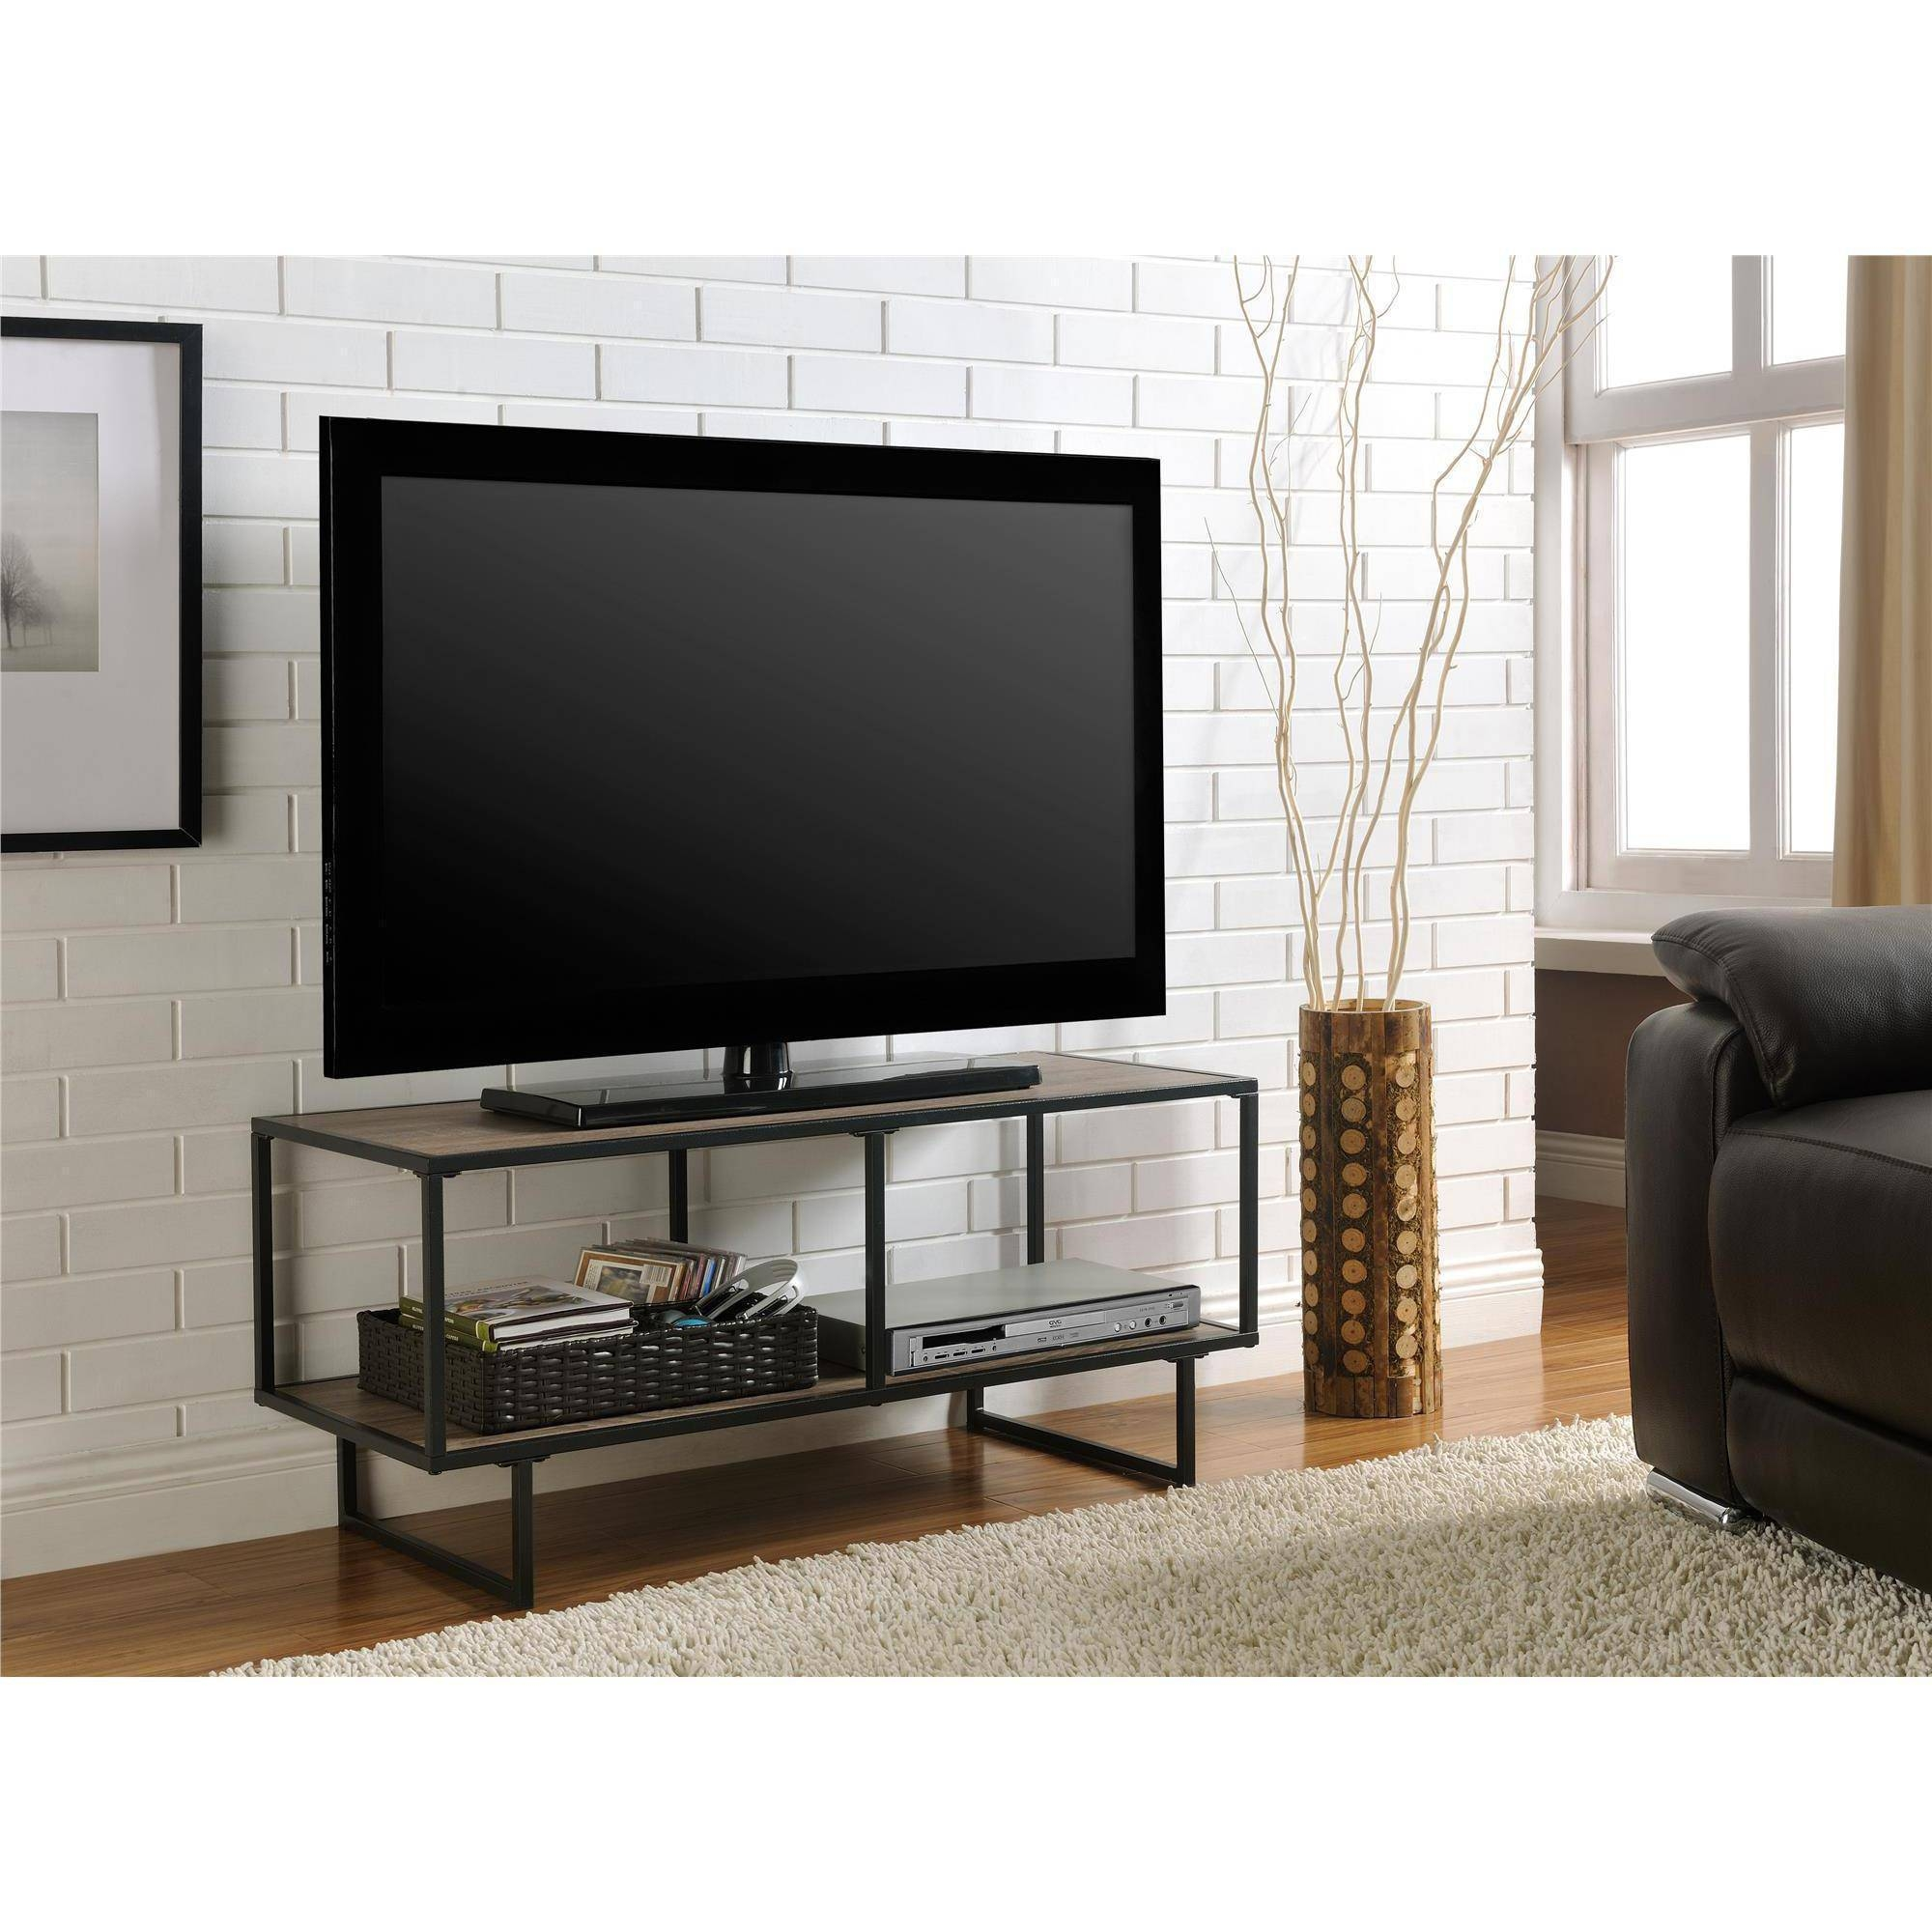 "Ameriwood Home Emmett Tv Stand/coffee Table For Tvs Up To 42"" Wide with regard to Coffee Tables And Tv Stands (Image 1 of 30)"